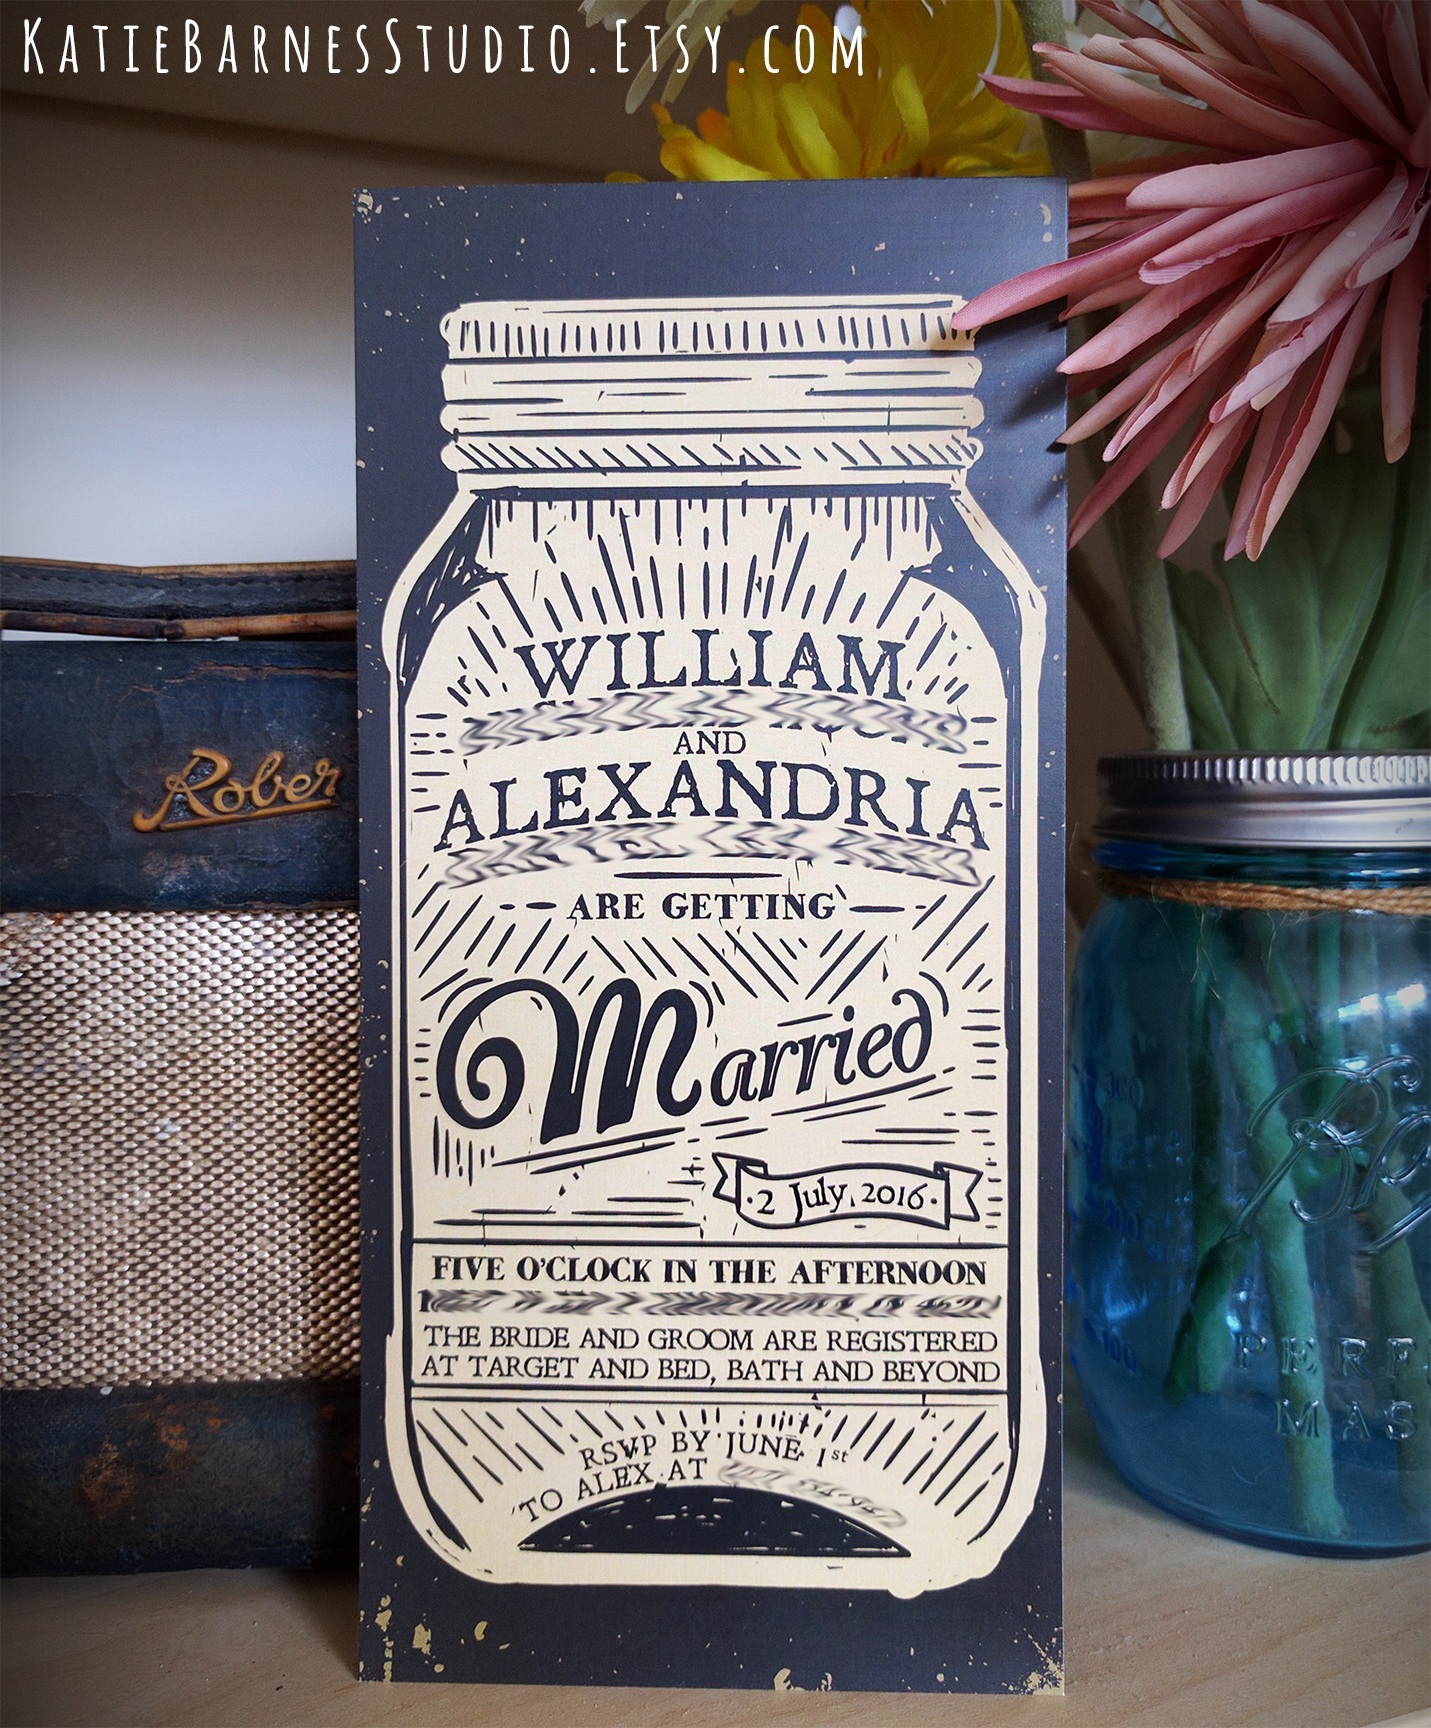 Rustic Mason Jar Wedding Invitation From Katiebarnesstudio Etsy Com